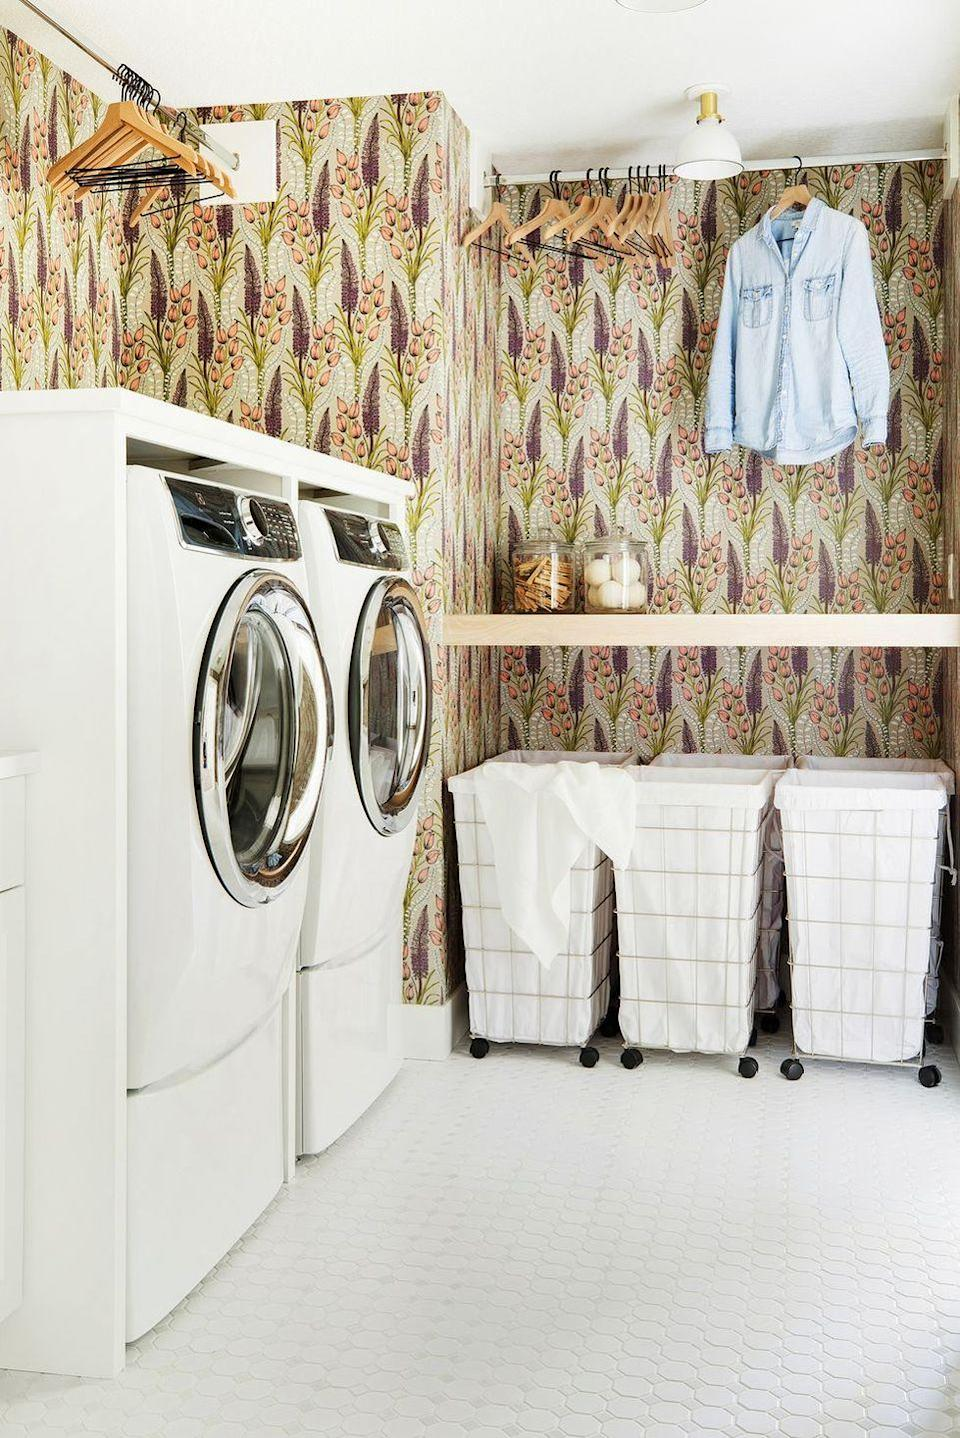 "<p>From graphic wallpaper to baskets on wheels, washing clothes won't ever feel like a chore if you <a href=""https://www.goodhousekeeping.com/home/organizing/g25572553/laundry-room-ideas/"" rel=""nofollow noopener"" target=""_blank"" data-ylk=""slk:give your laundry room the design attention"" class=""link rapid-noclick-resp"">give your laundry room the design attention</a> it deserves.<br></p>"